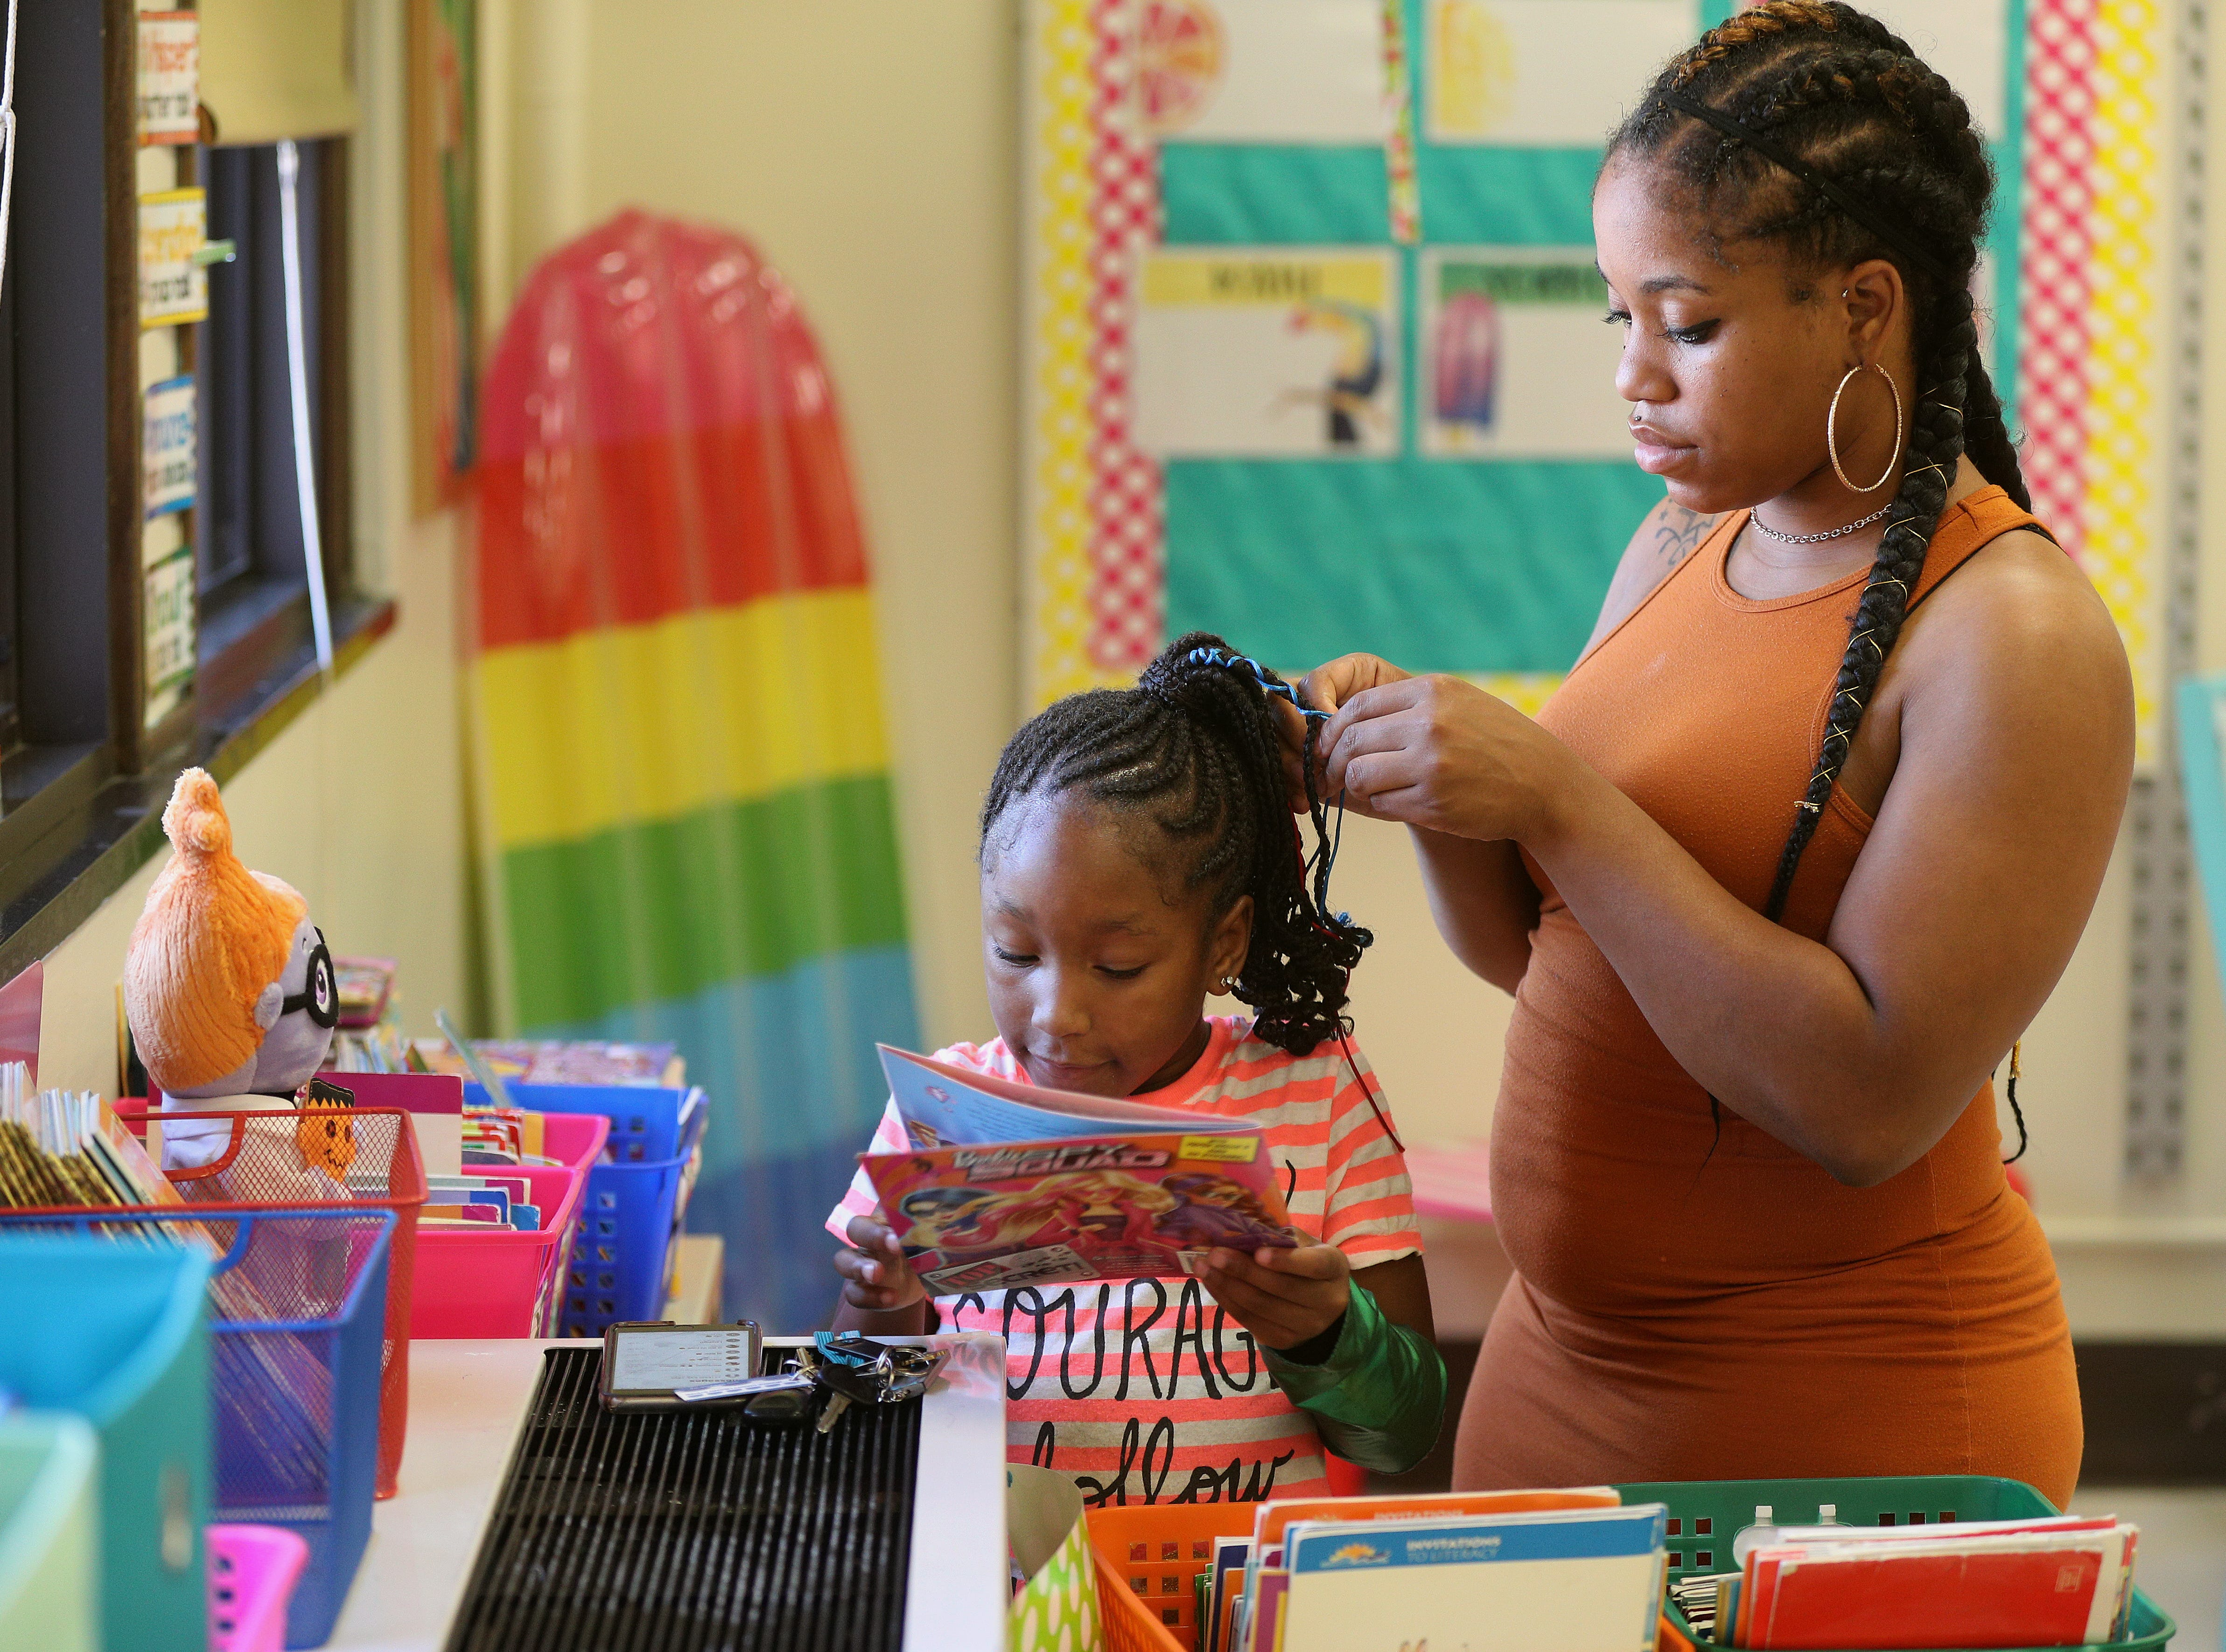 Kanyia William reads a book while her mother Keisha Kennedy braids her hair.  They were able to visit classrooms in RISE Community School where Kanyia will be in first grade.